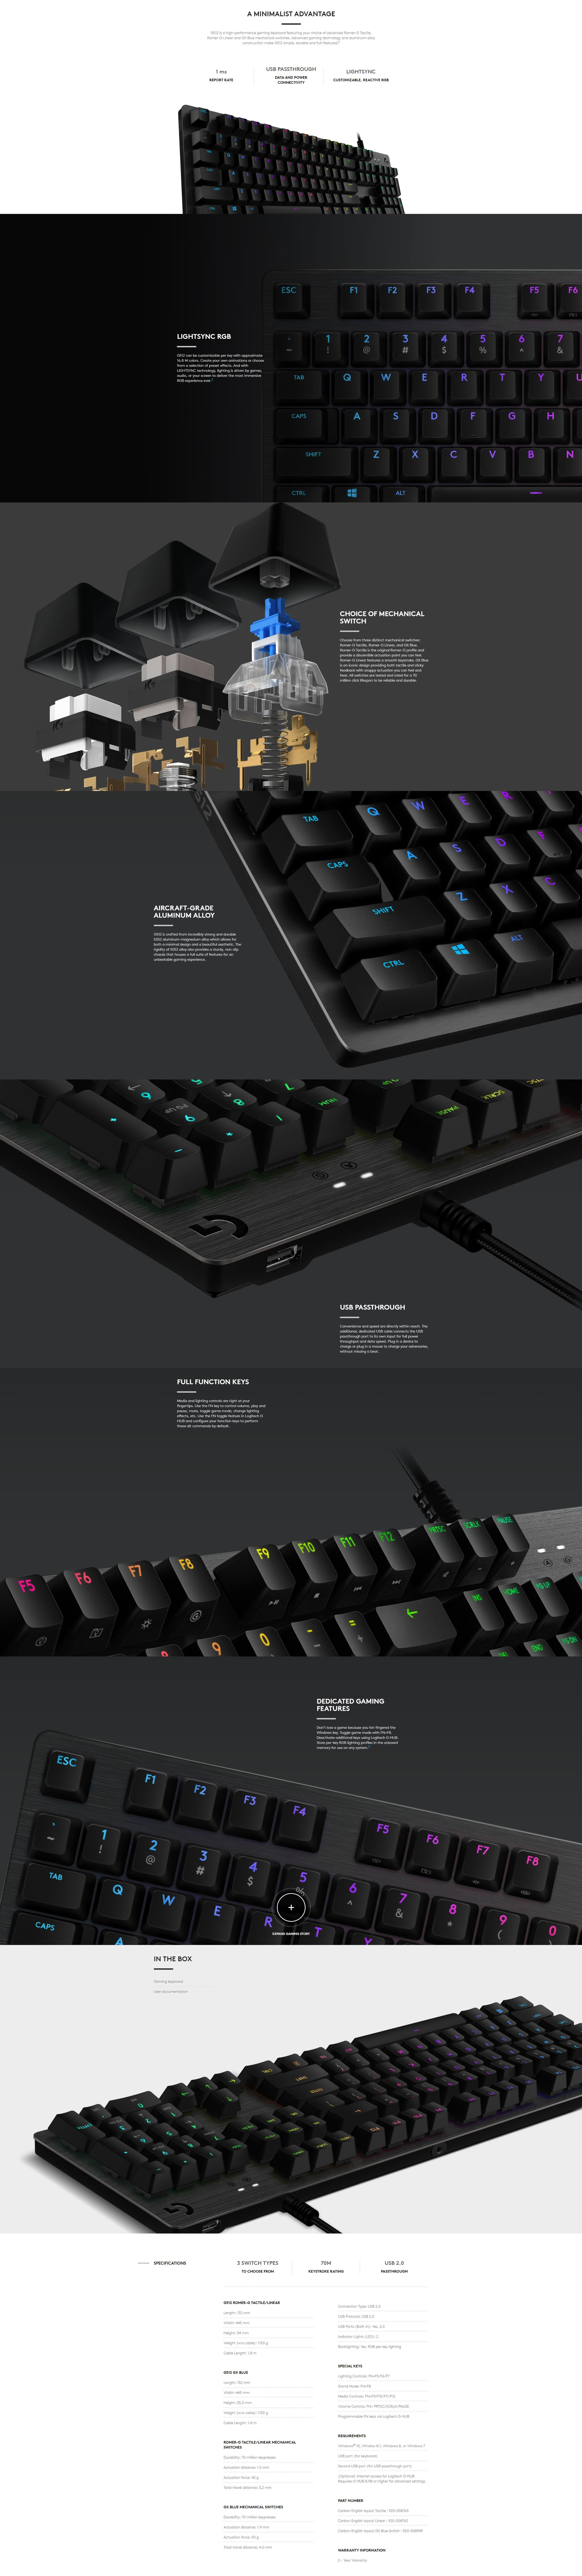 Buy Now Logitech G512 Carbon Rgb Mechanical Gaming Keyboard Clicky Switch Ple Computers